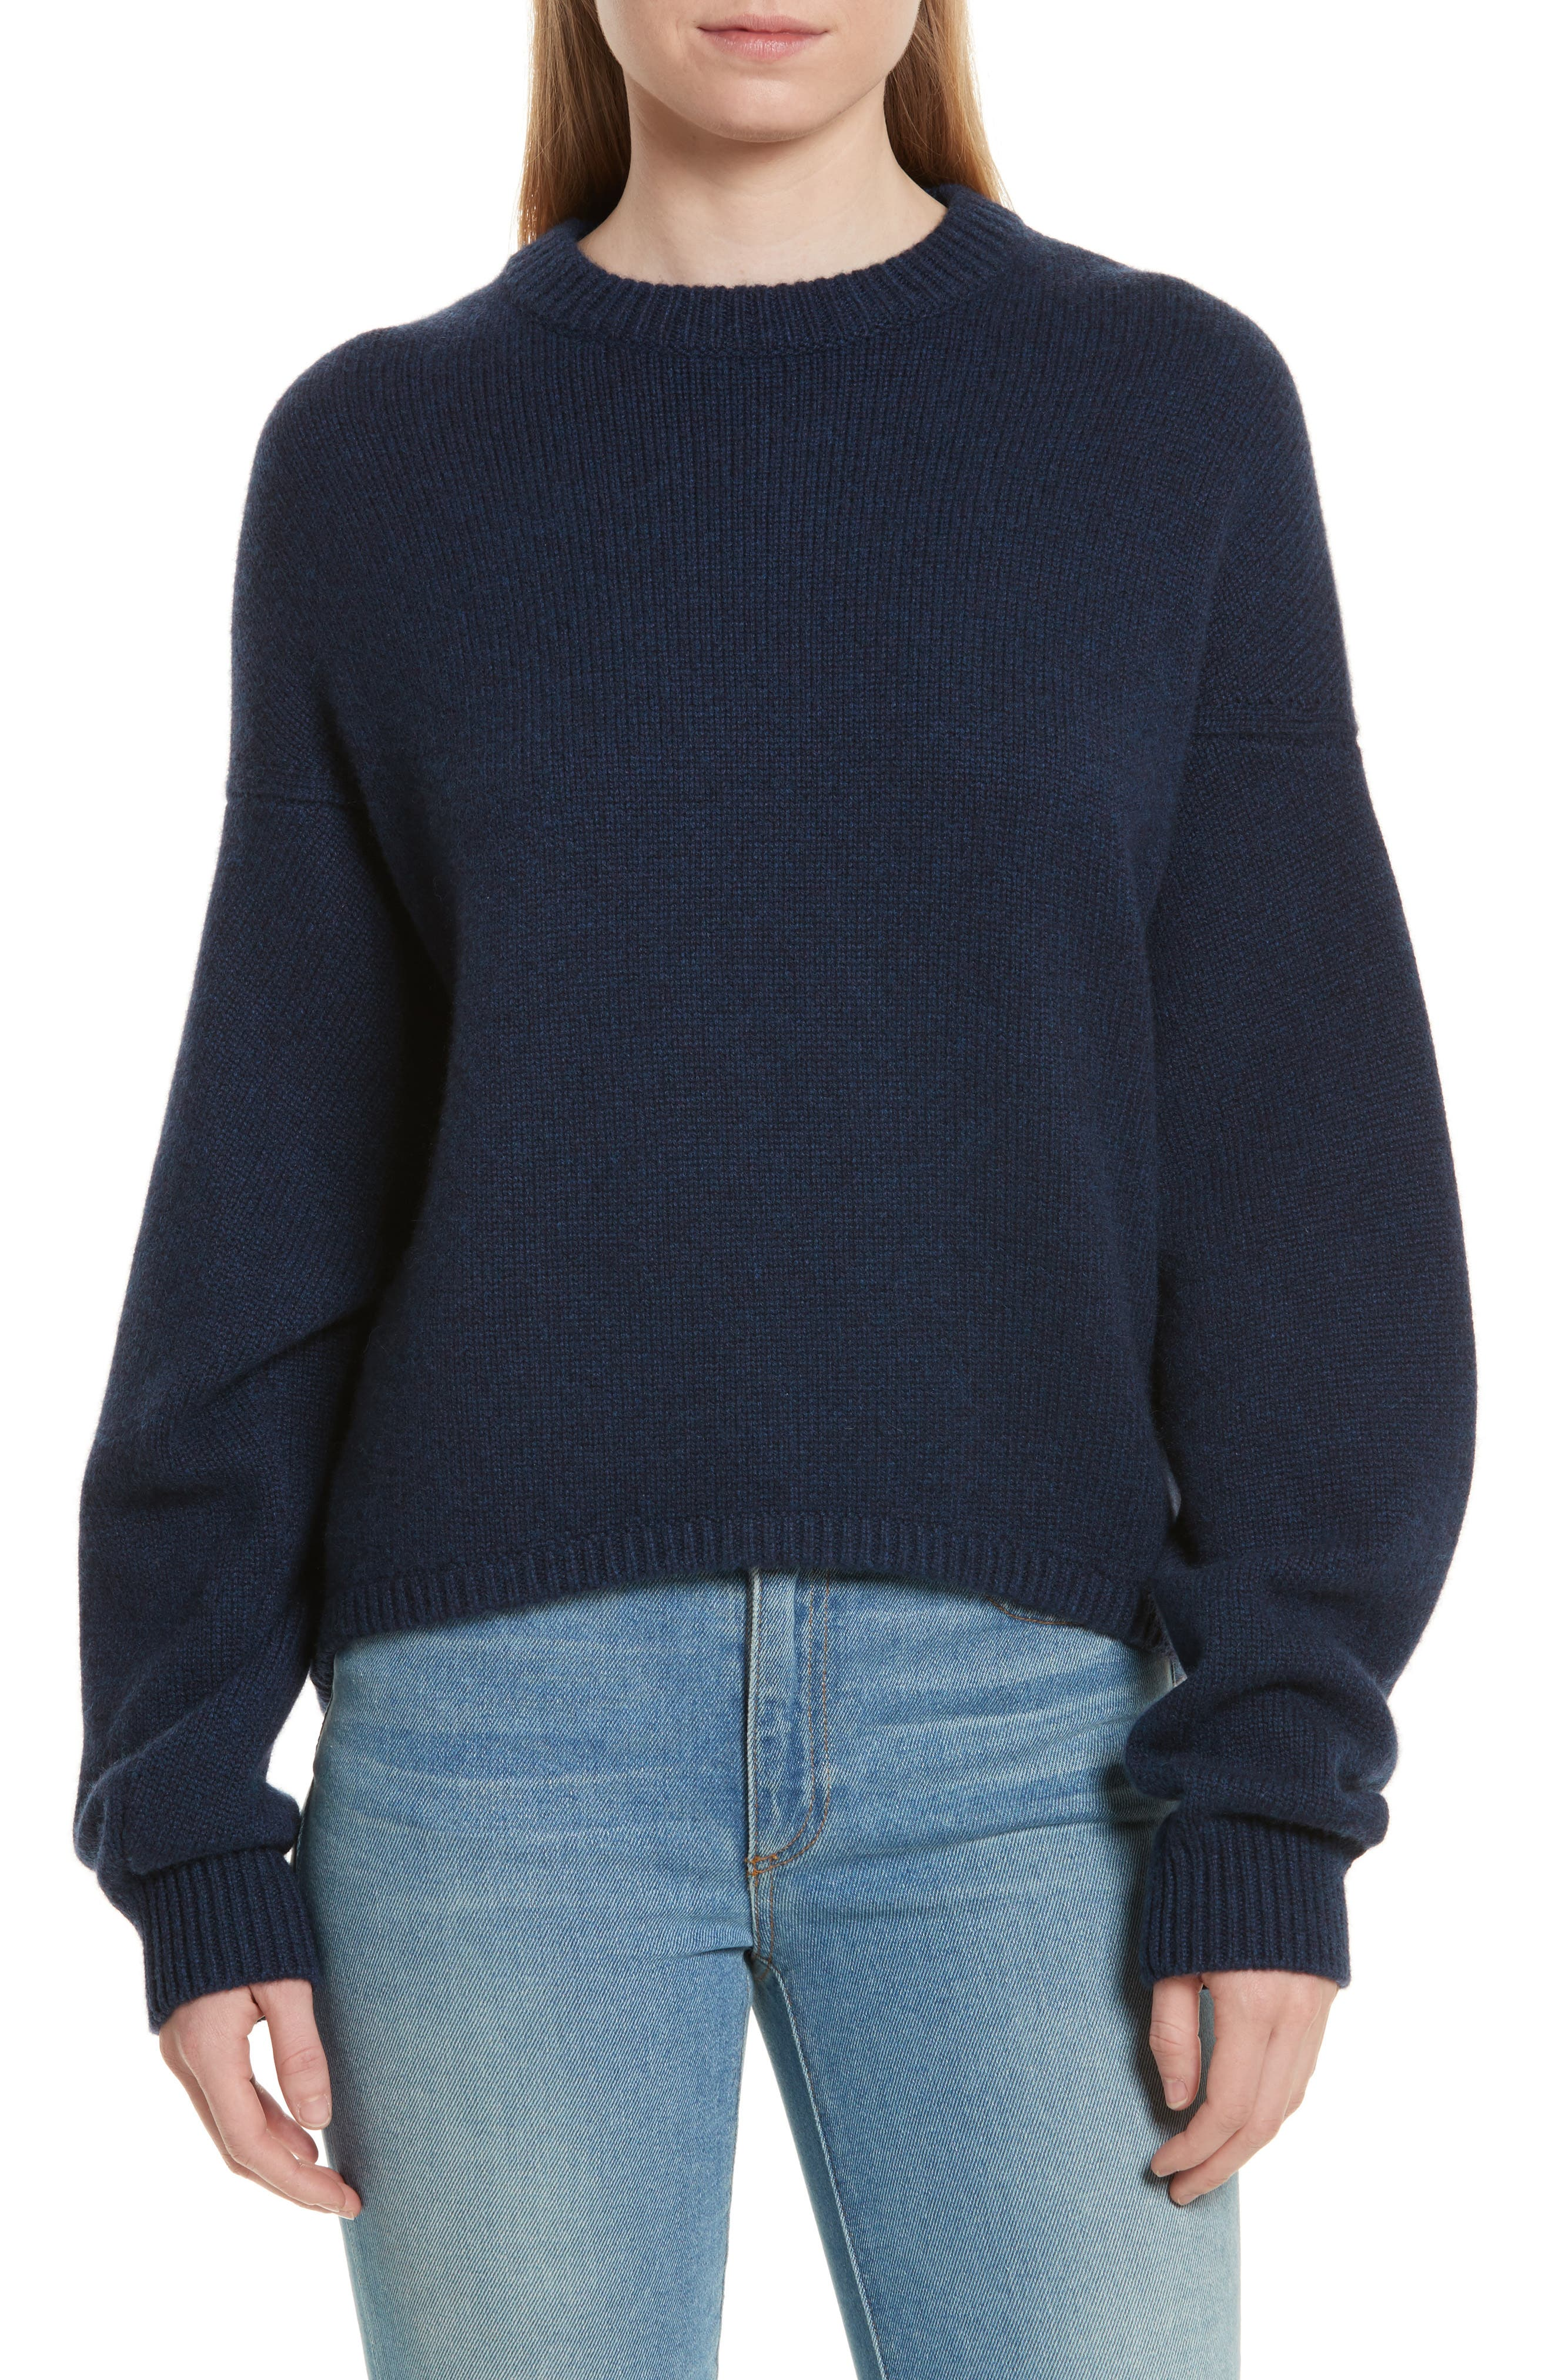 Tibi Sculpted Sleeve High/Low Cashmere Sweater